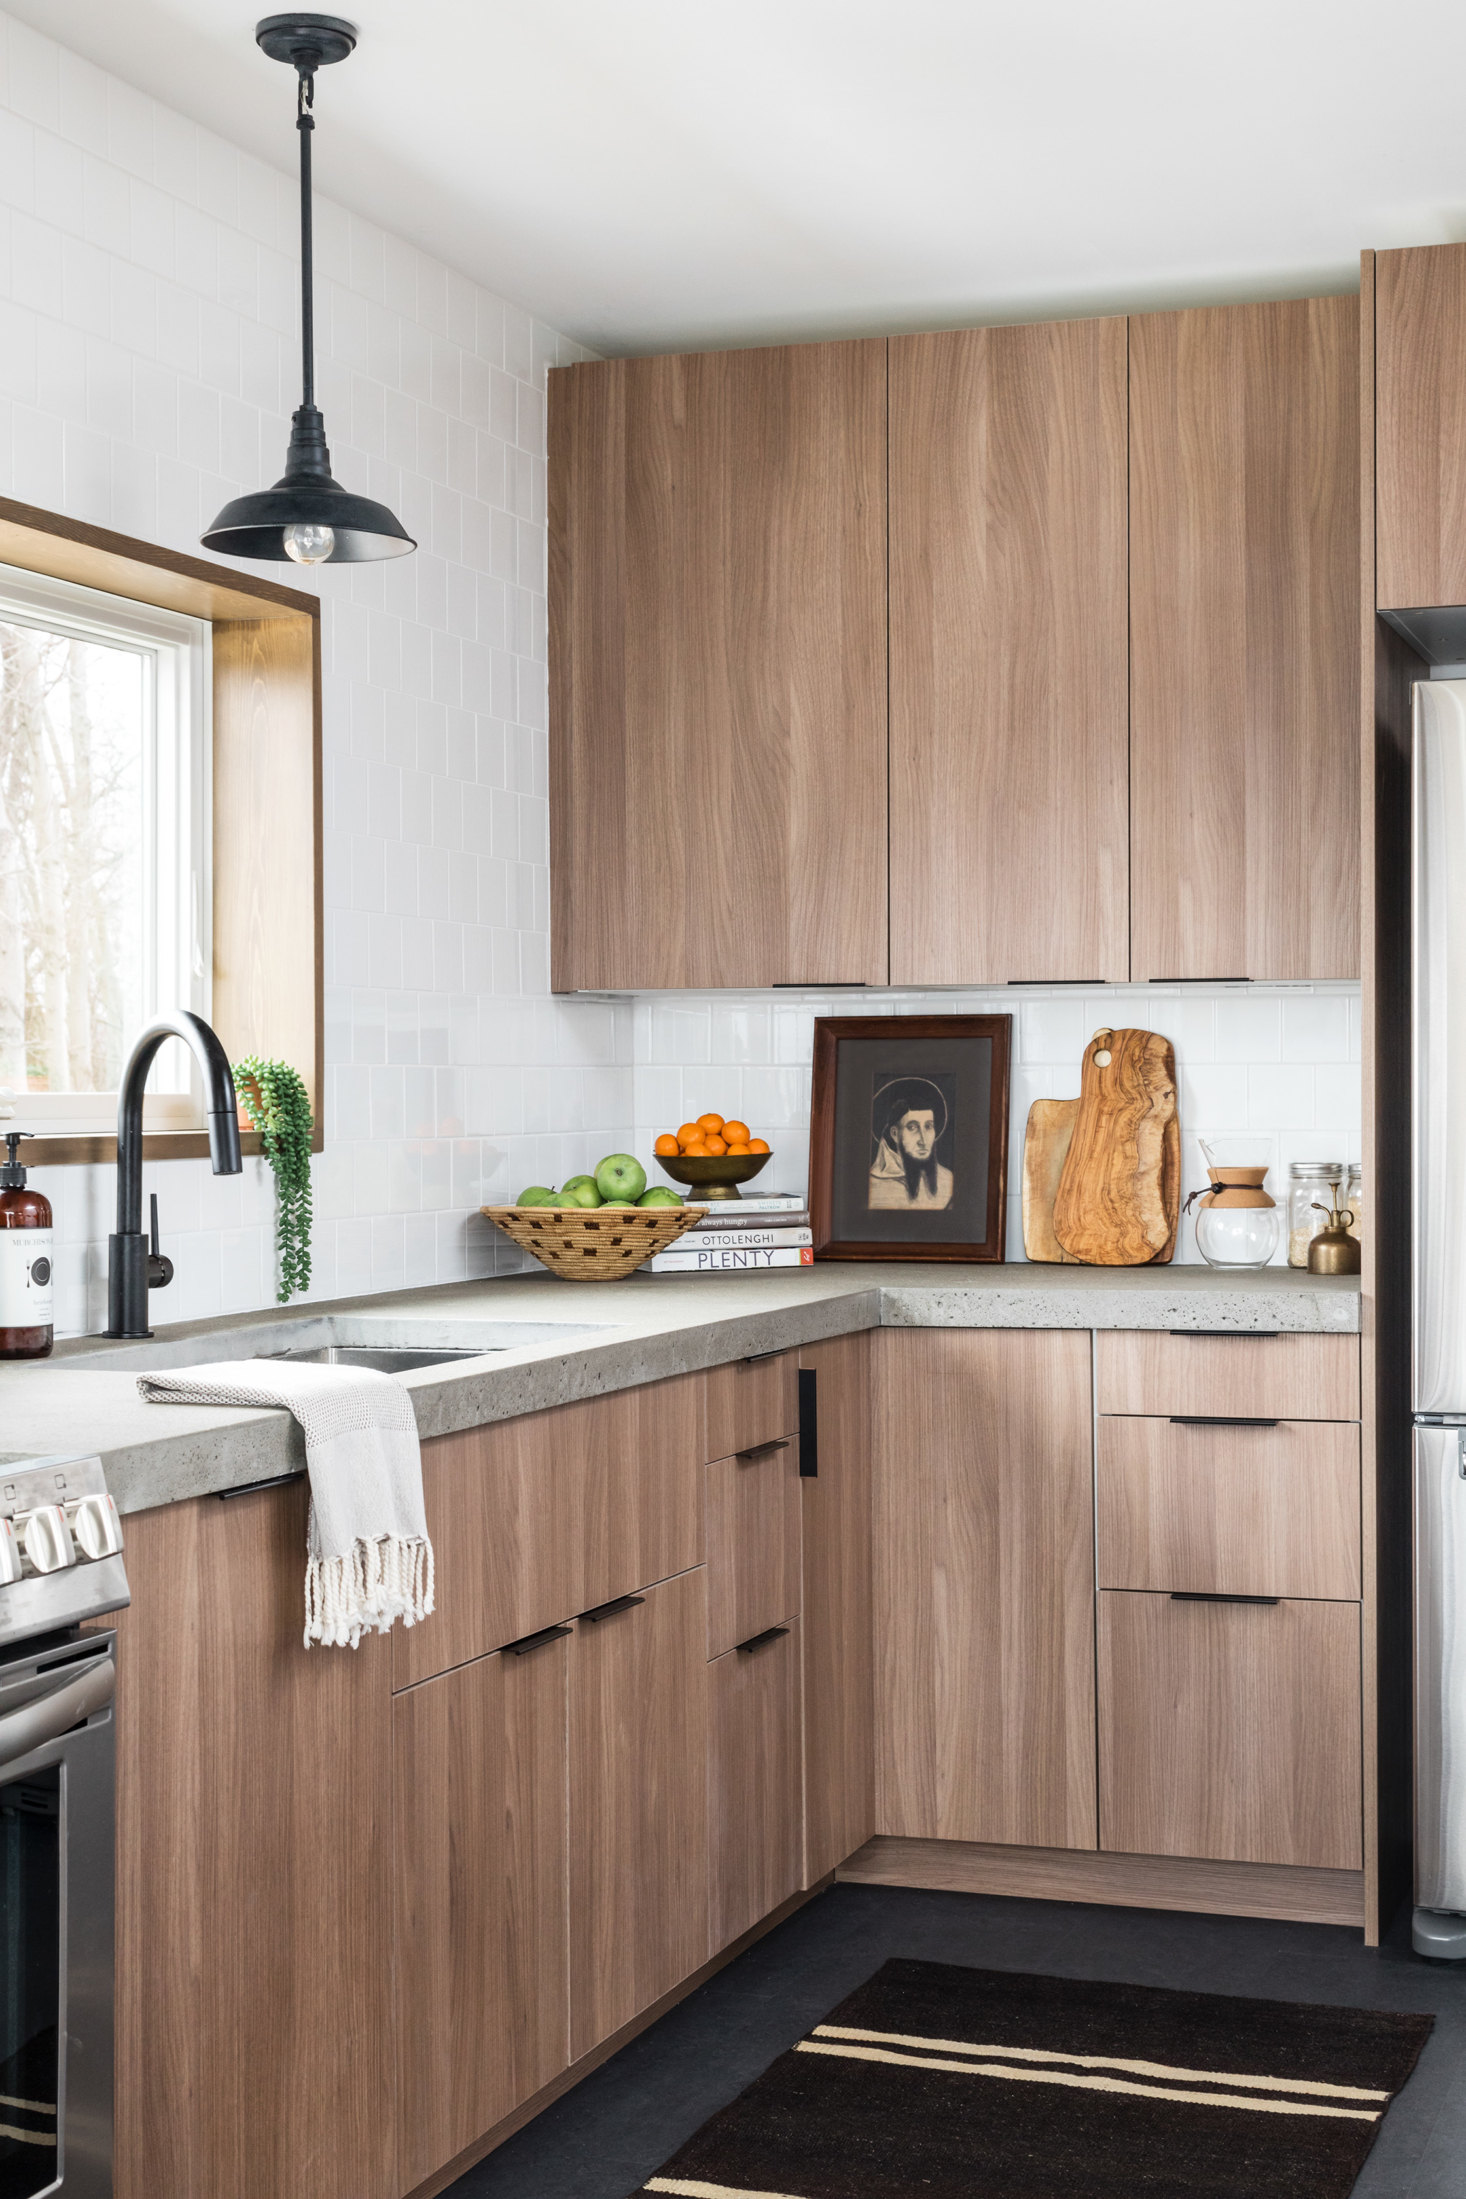 ikea cabinetry with semihandmade cabinet fronts